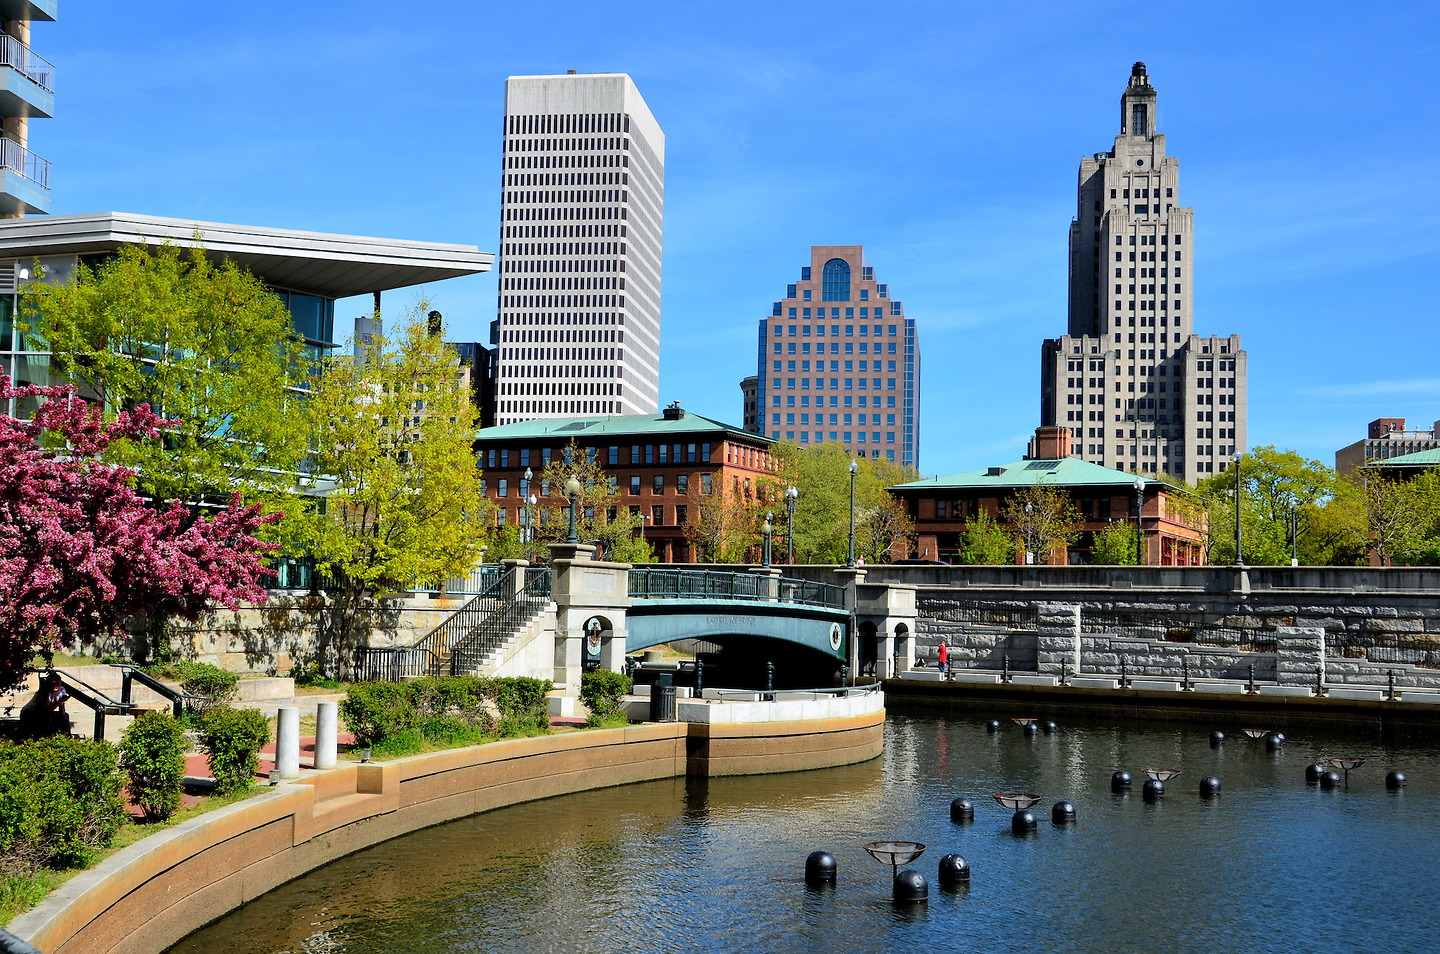 orourke v city of providence Young v city of providence - us 1st circuit case summary - united states first circuit julia m orourke, plaintiff, appellee, v city of providence, defendant.